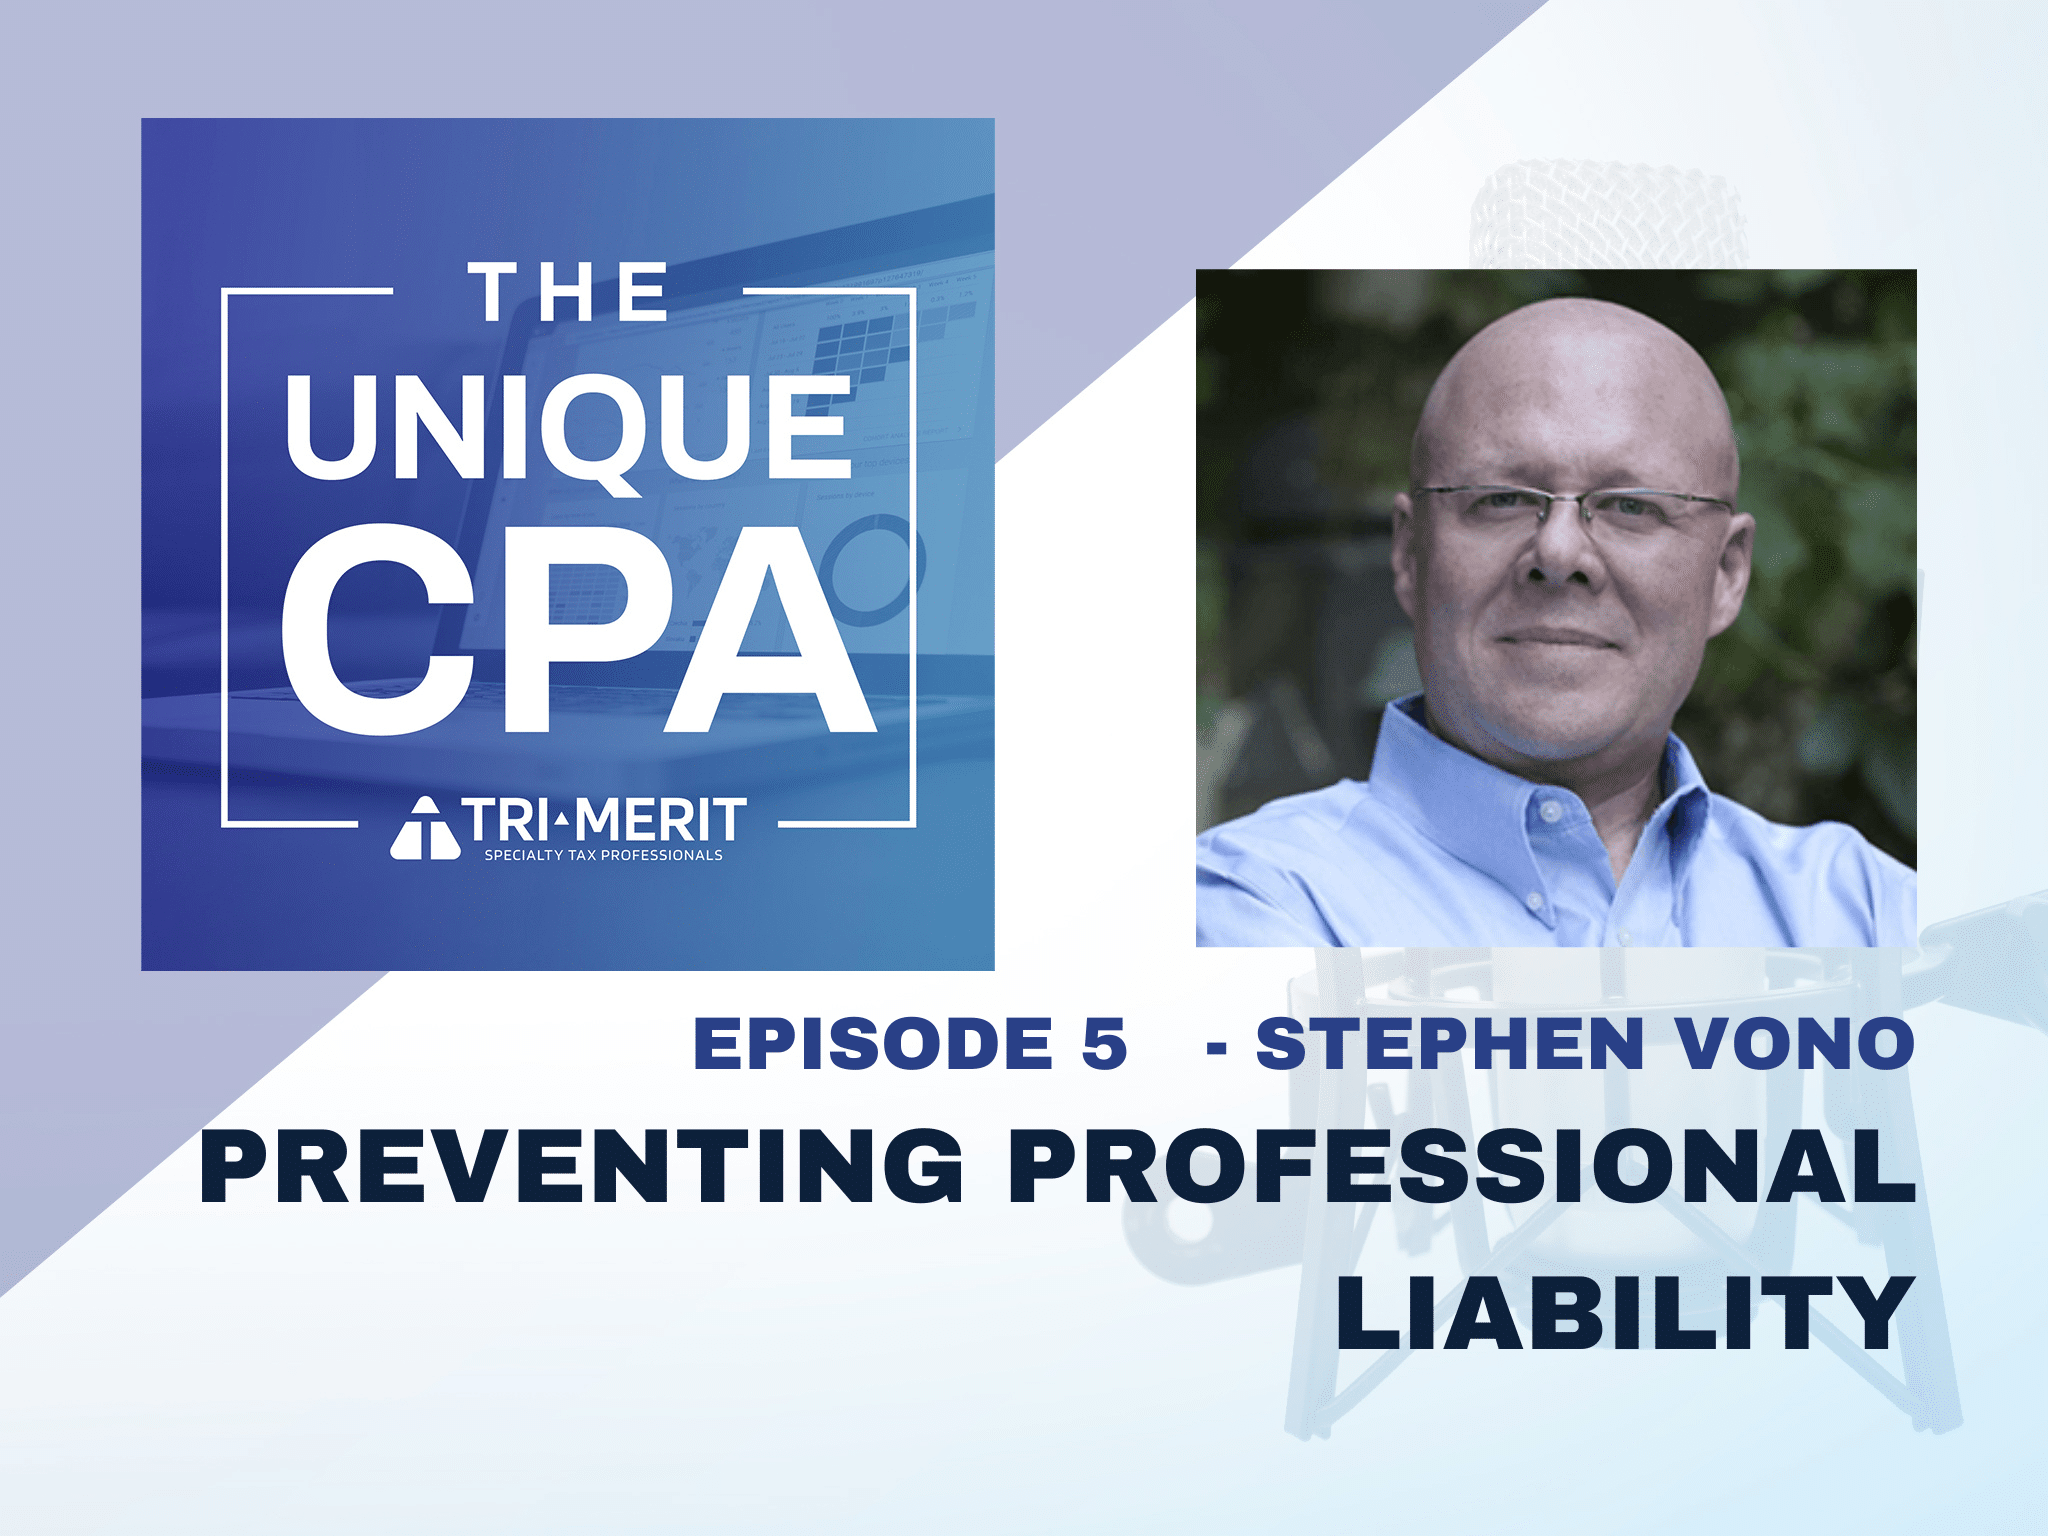 The Unique CPA Feature Image Ep 5 - Stephen Vono: Preventing Professional Liability - Tri-Merit